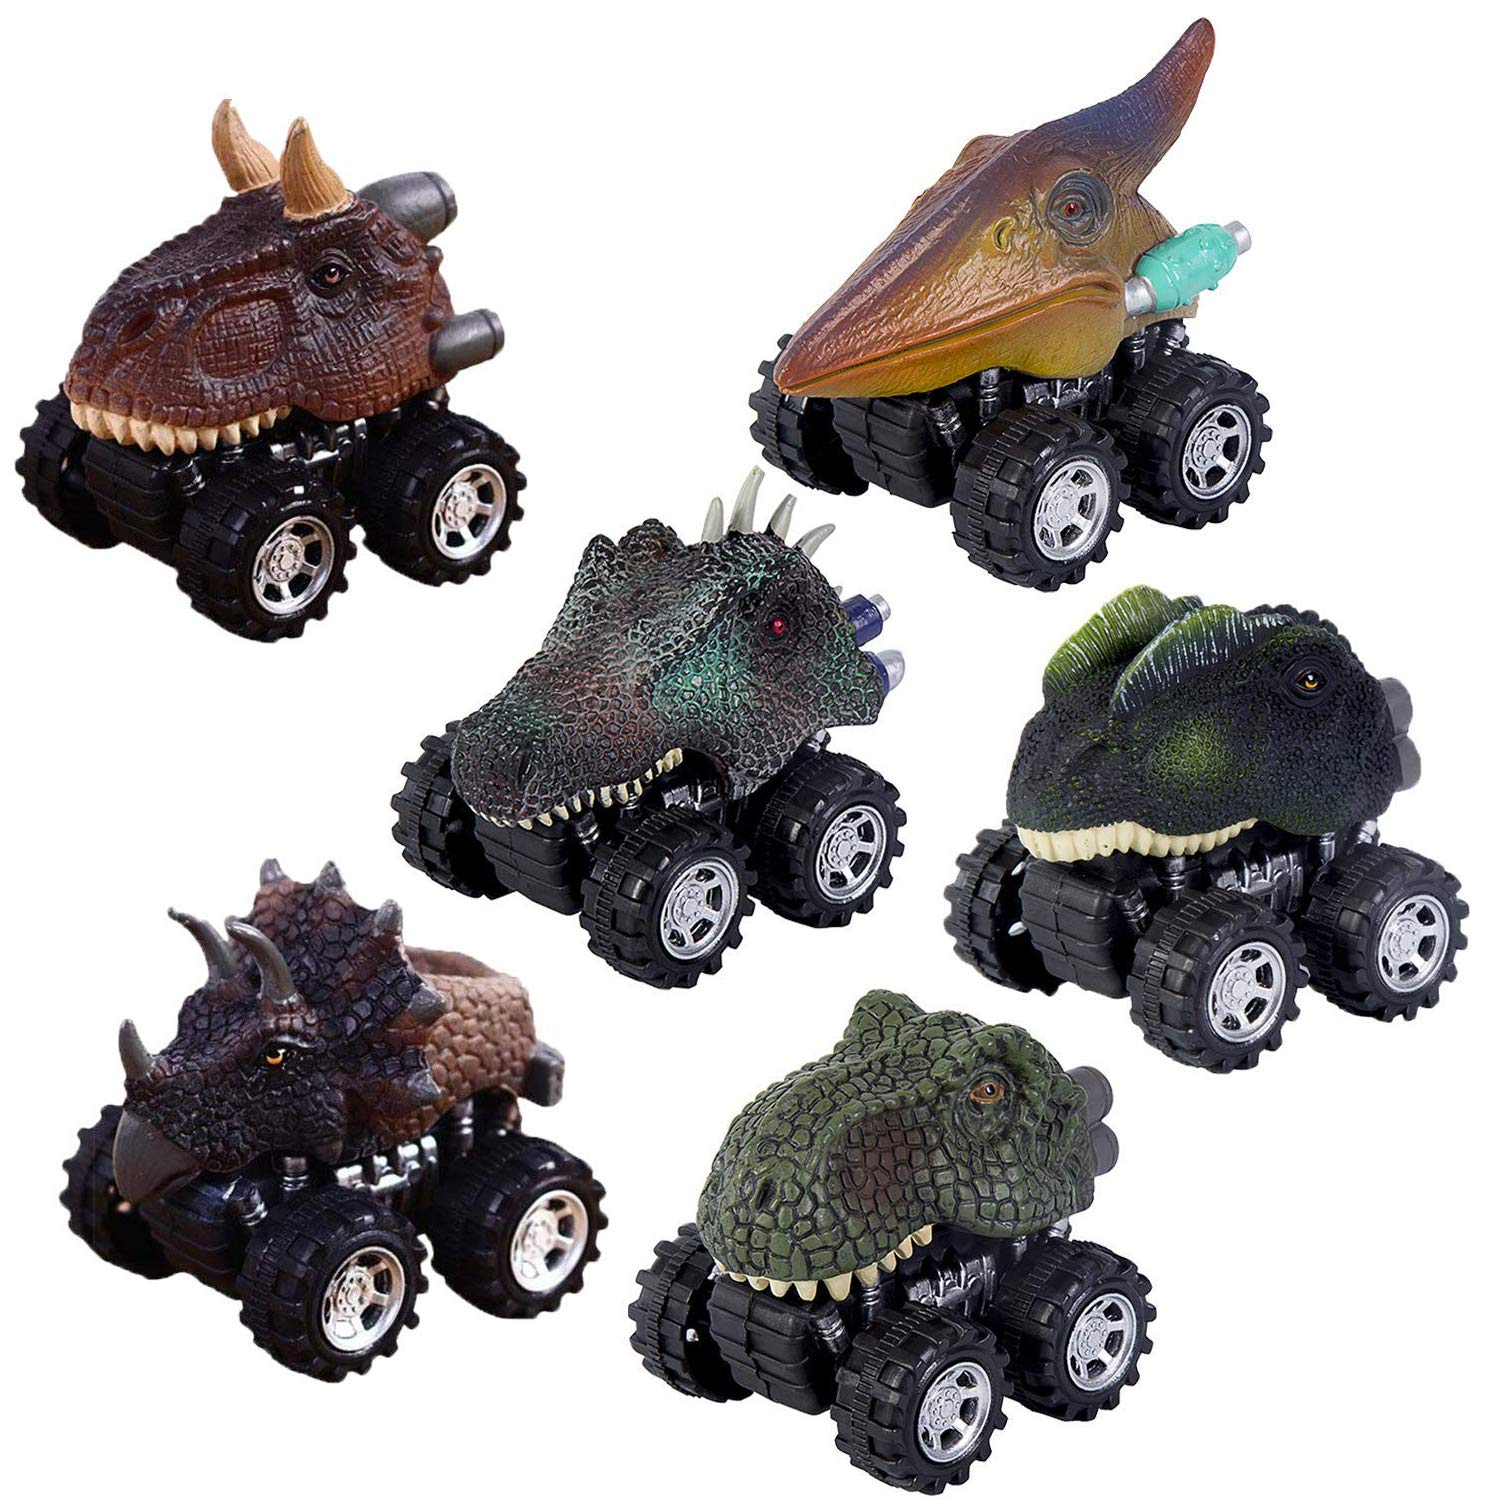 Dino Cars Toys with Big Tire Wheel for 3-14 Year Old Boys Girls Creative Gifts for Kids. Pull Back Dinosaur Cars Set of 6